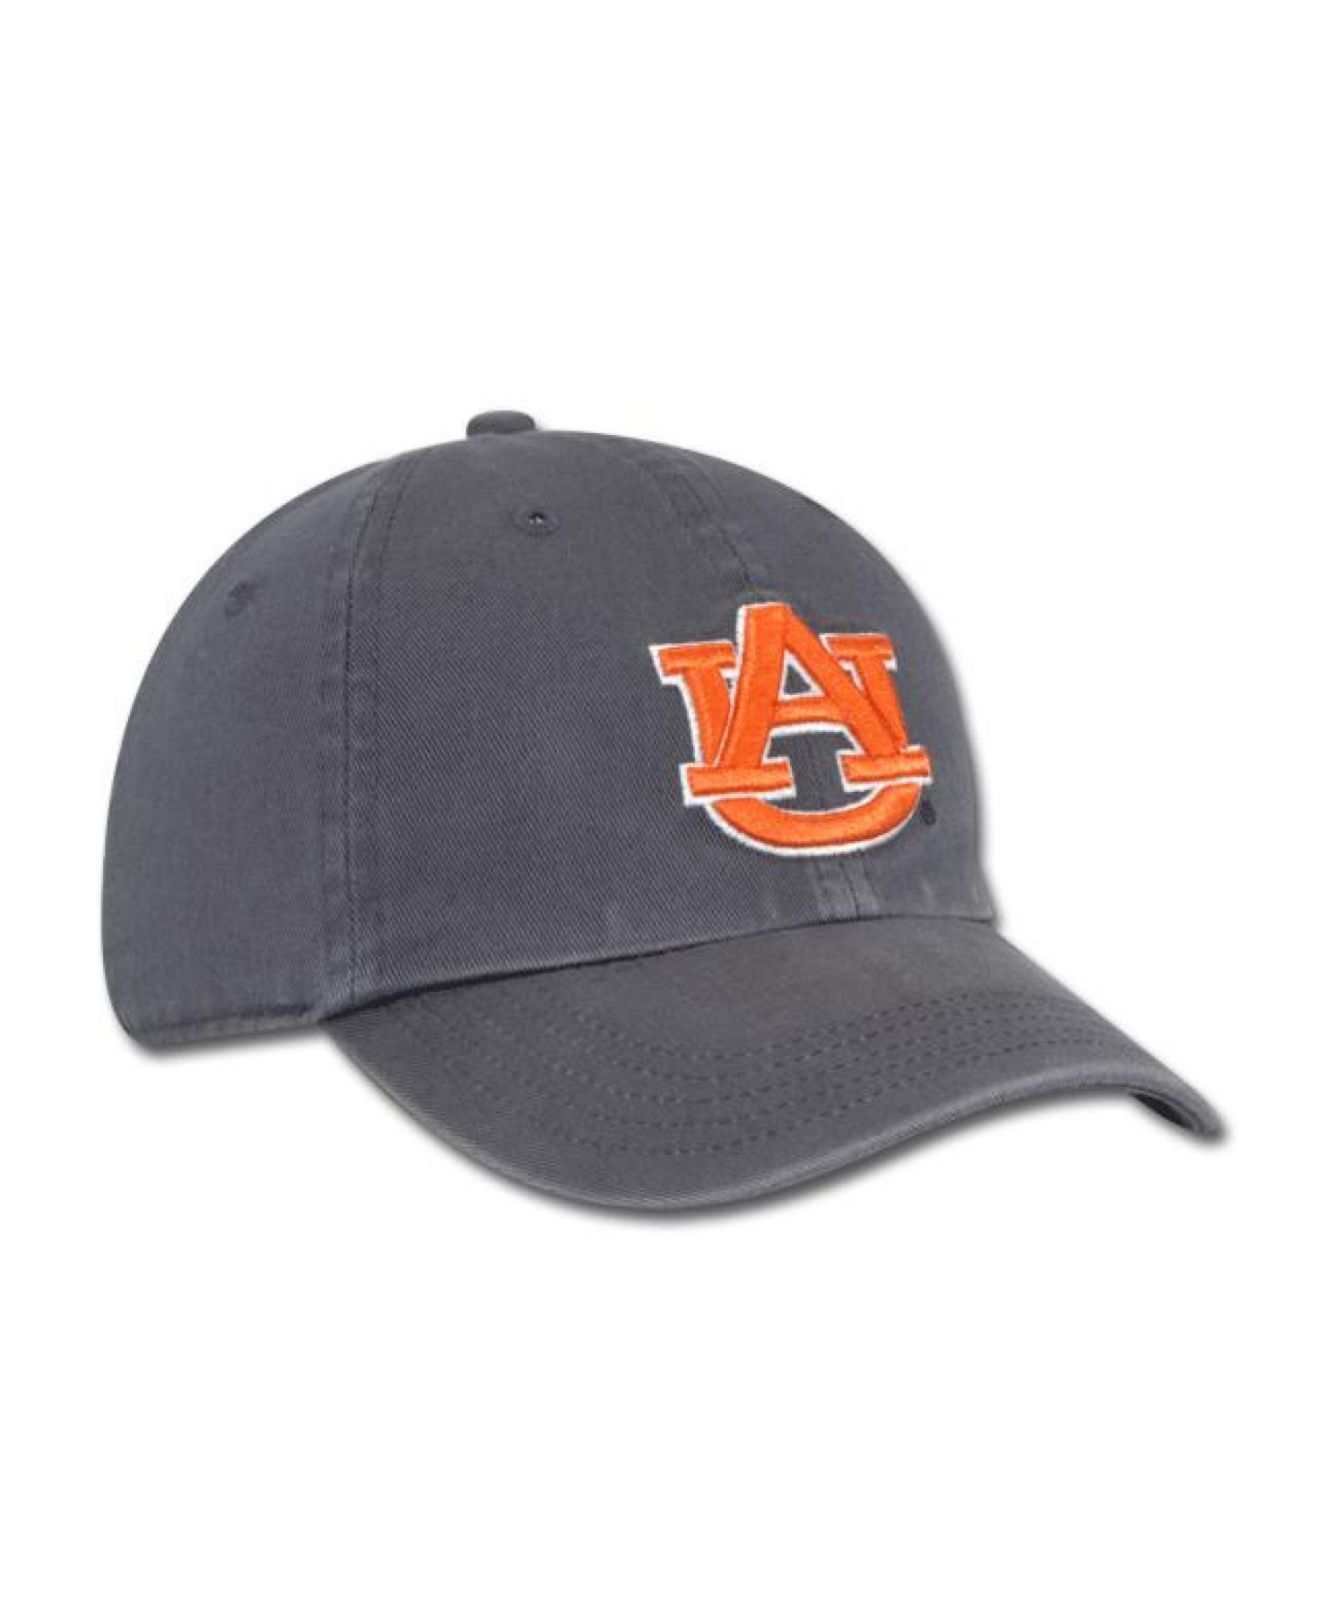 brand new c8e7c 0941c ... sale lyst 47 brand kids auburn tigers clean up cap in blue for men  29d02 eaec1